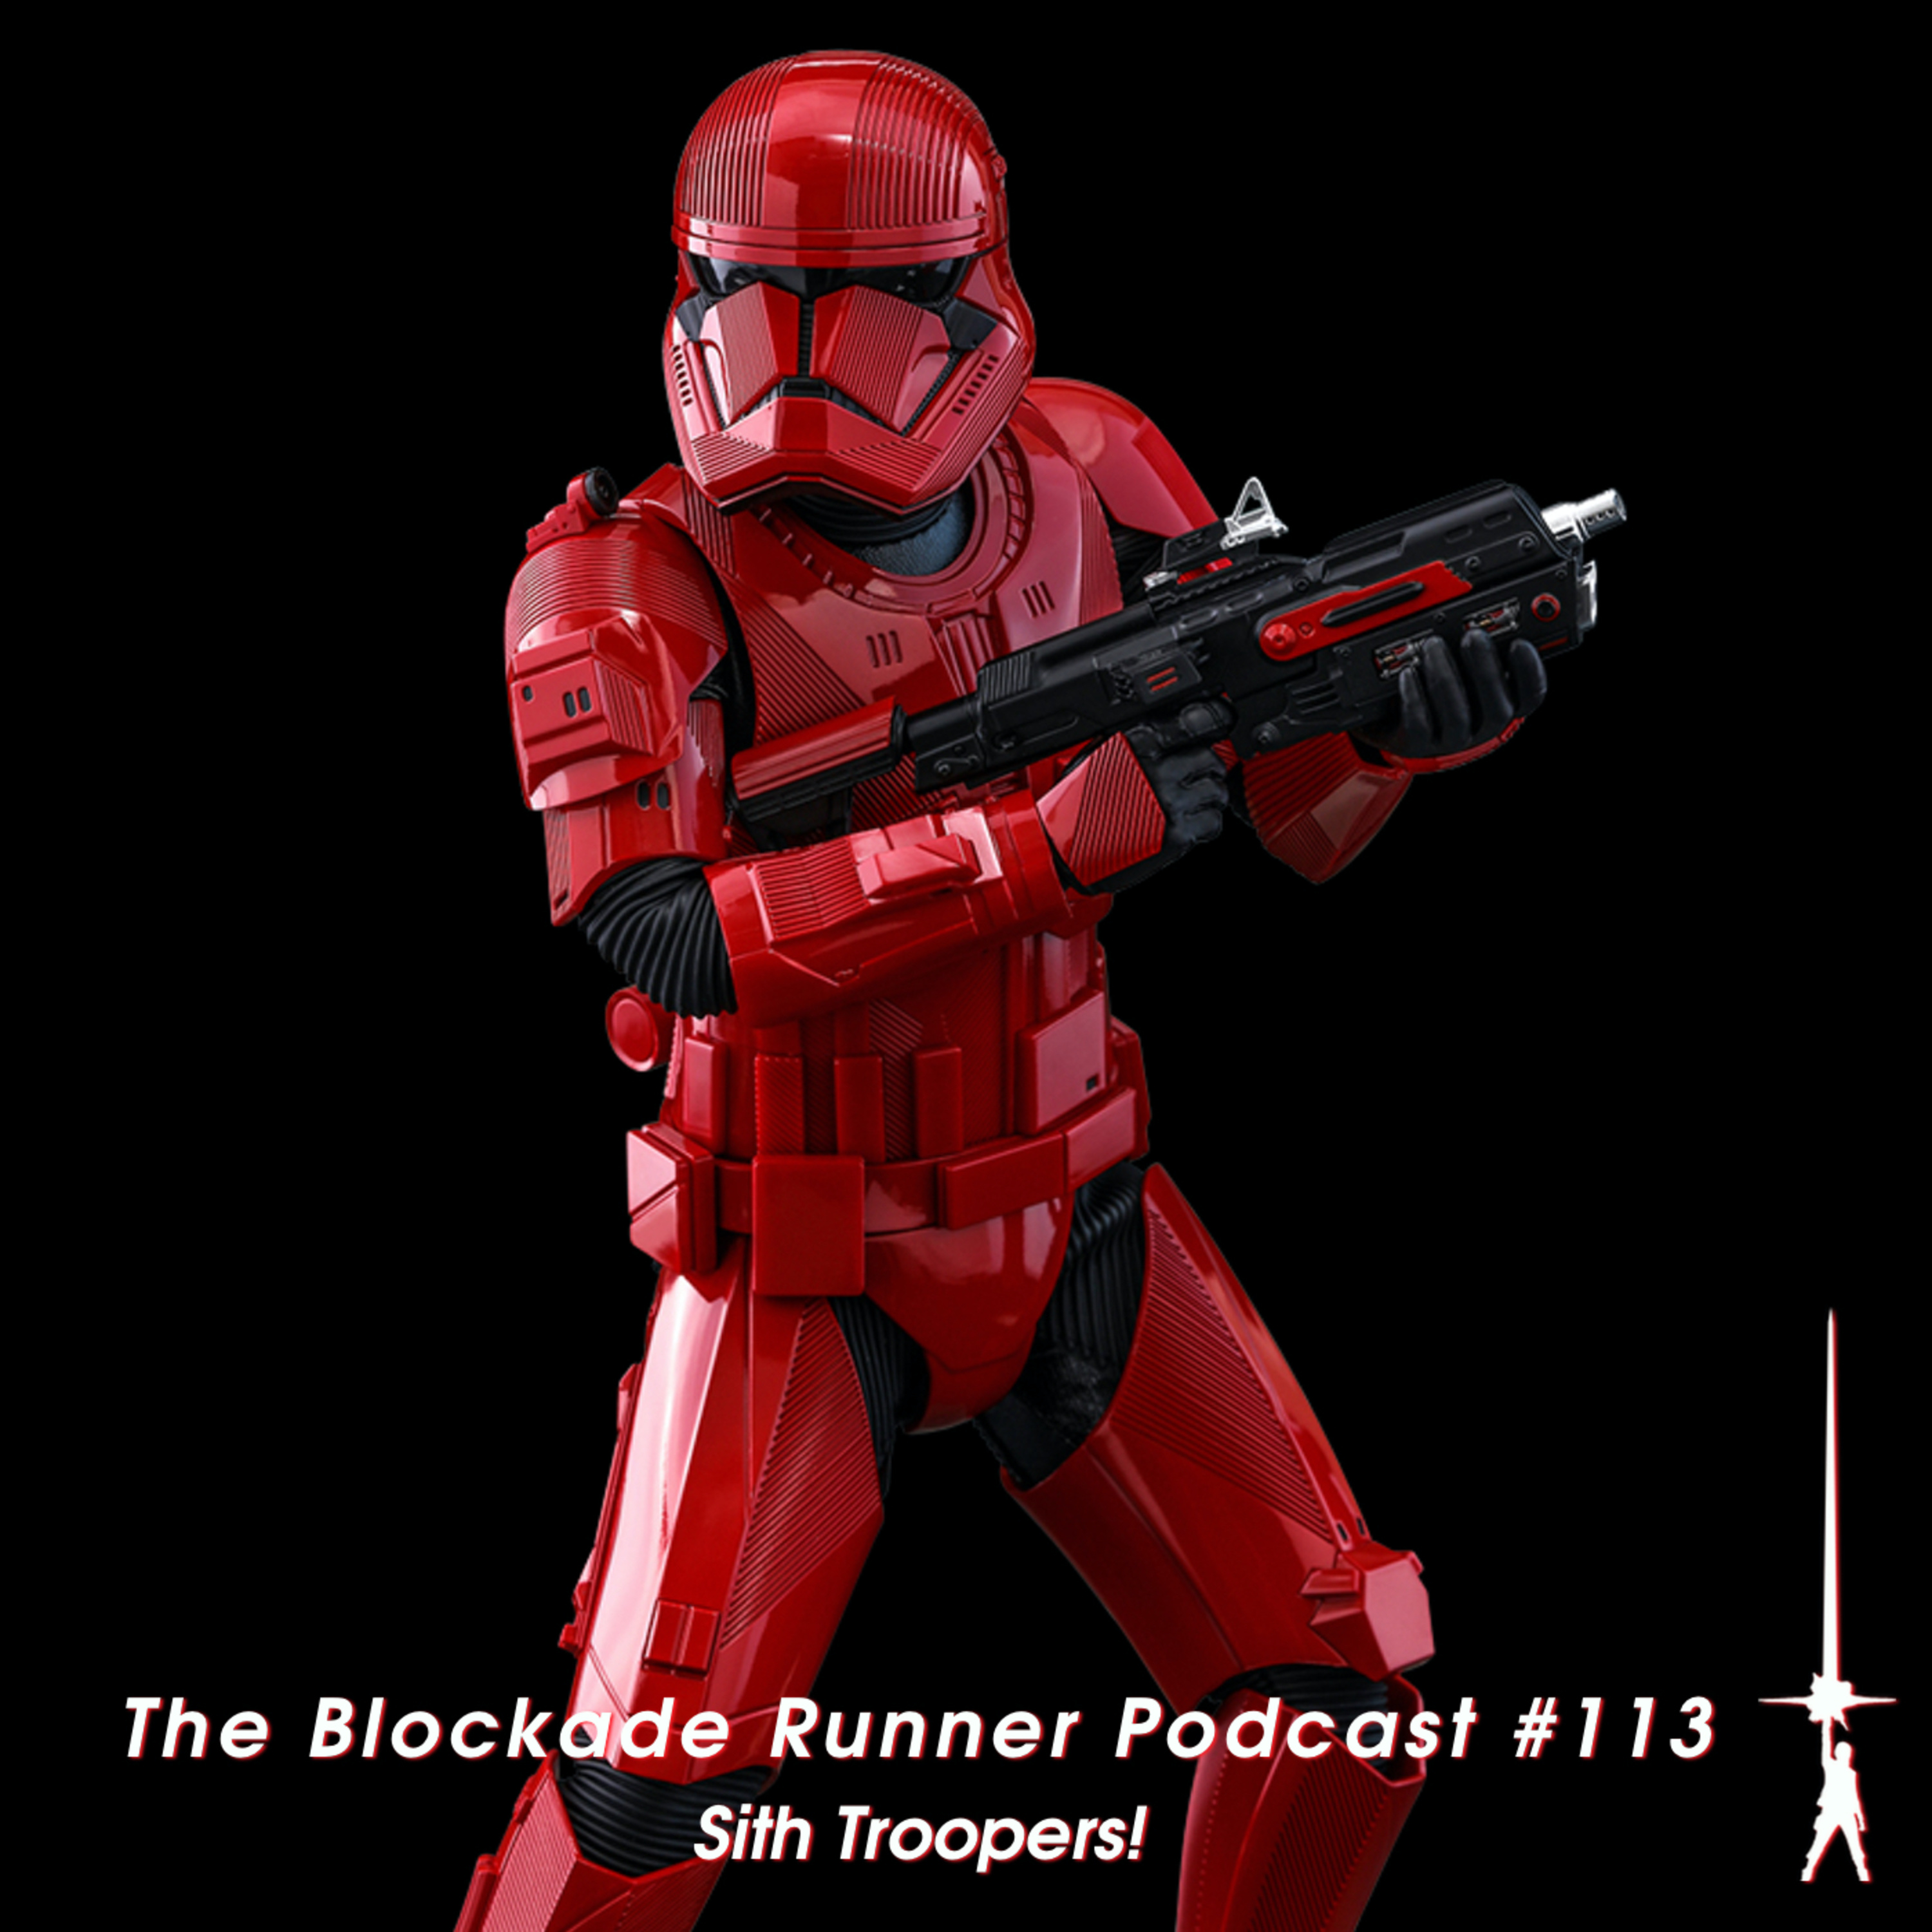 Sith Troopers! - The Blockade Runner Podcast #113